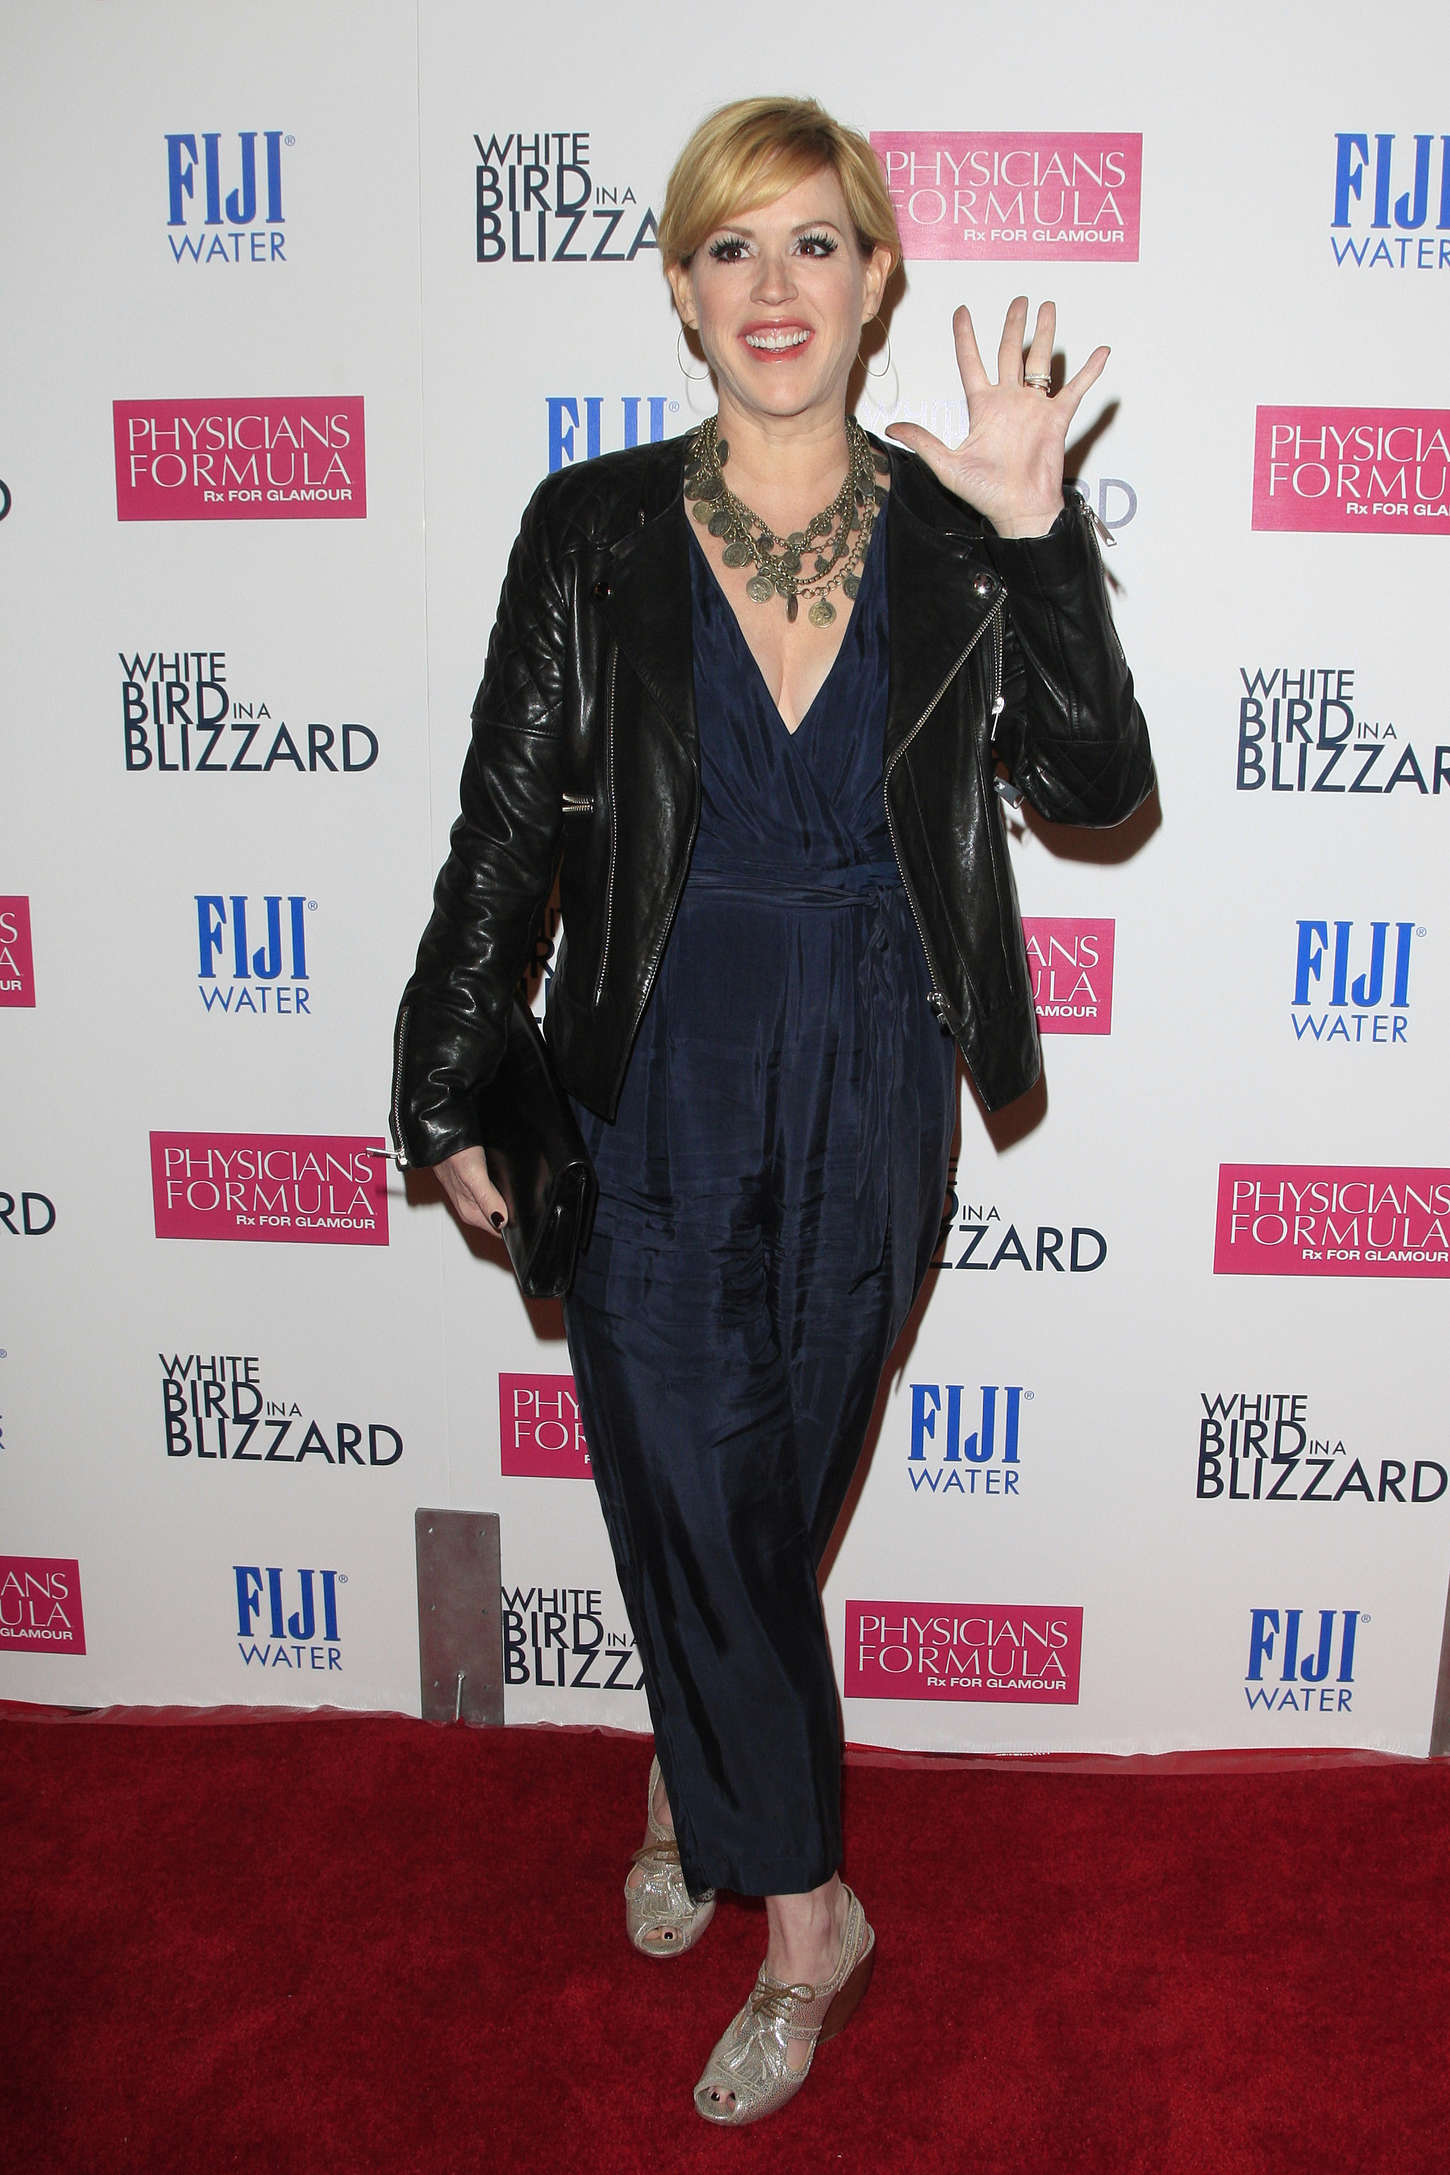 Molly Ringwald at Premiere White Bird in a Blizzard in Los Angeles